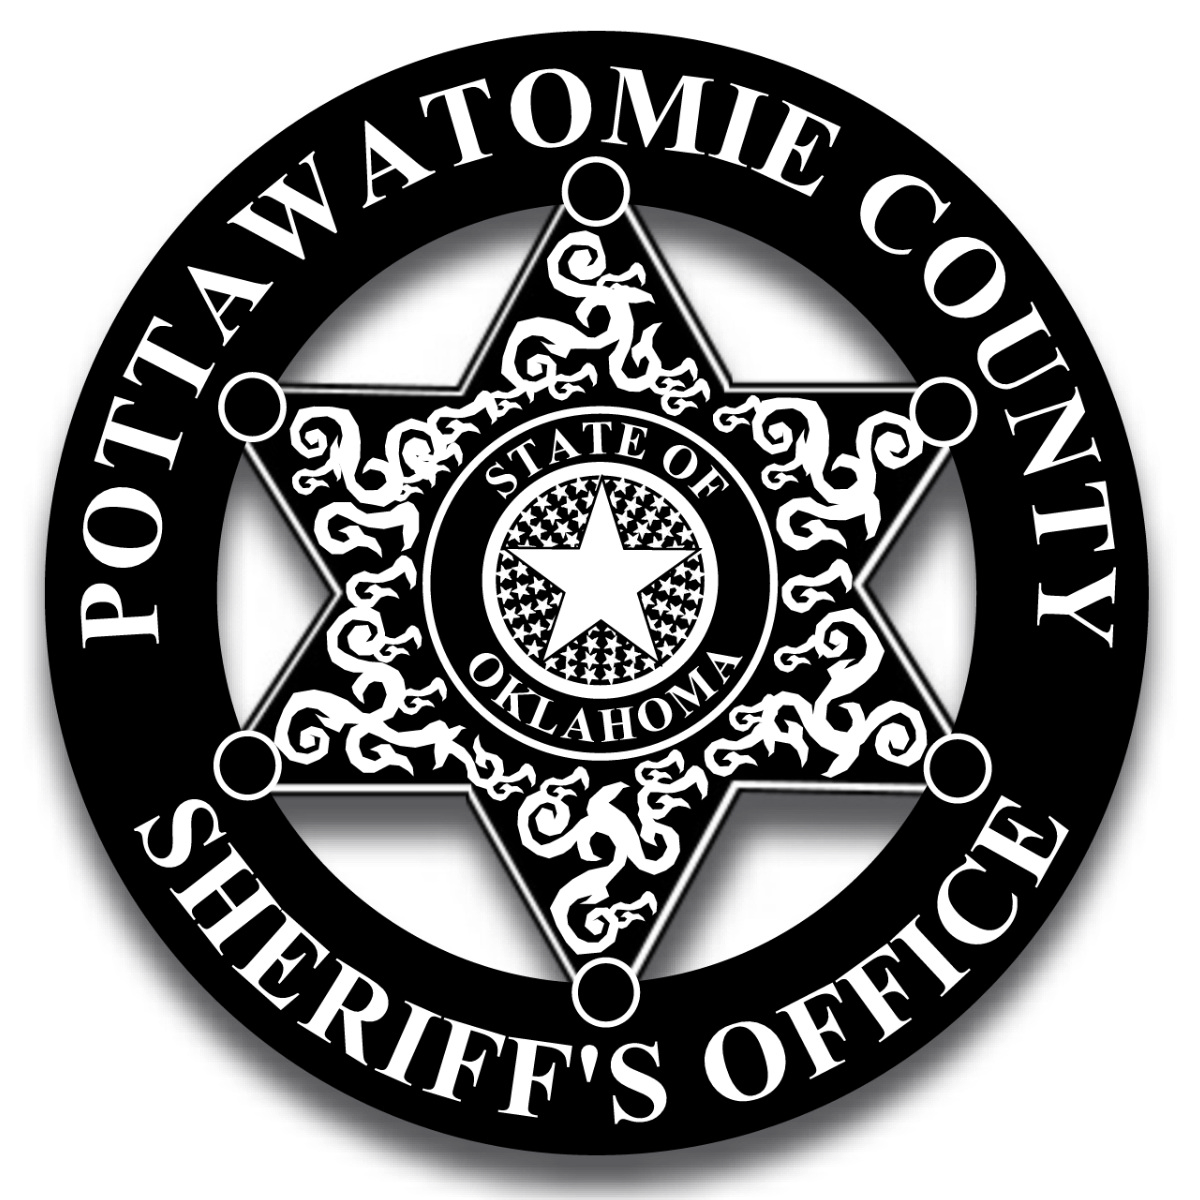 Skeletal remains found at river in wanette pottawatomie county skeletal remains found at river in wanette pottawatomie county sheriffs office nextdoor buycottarizona